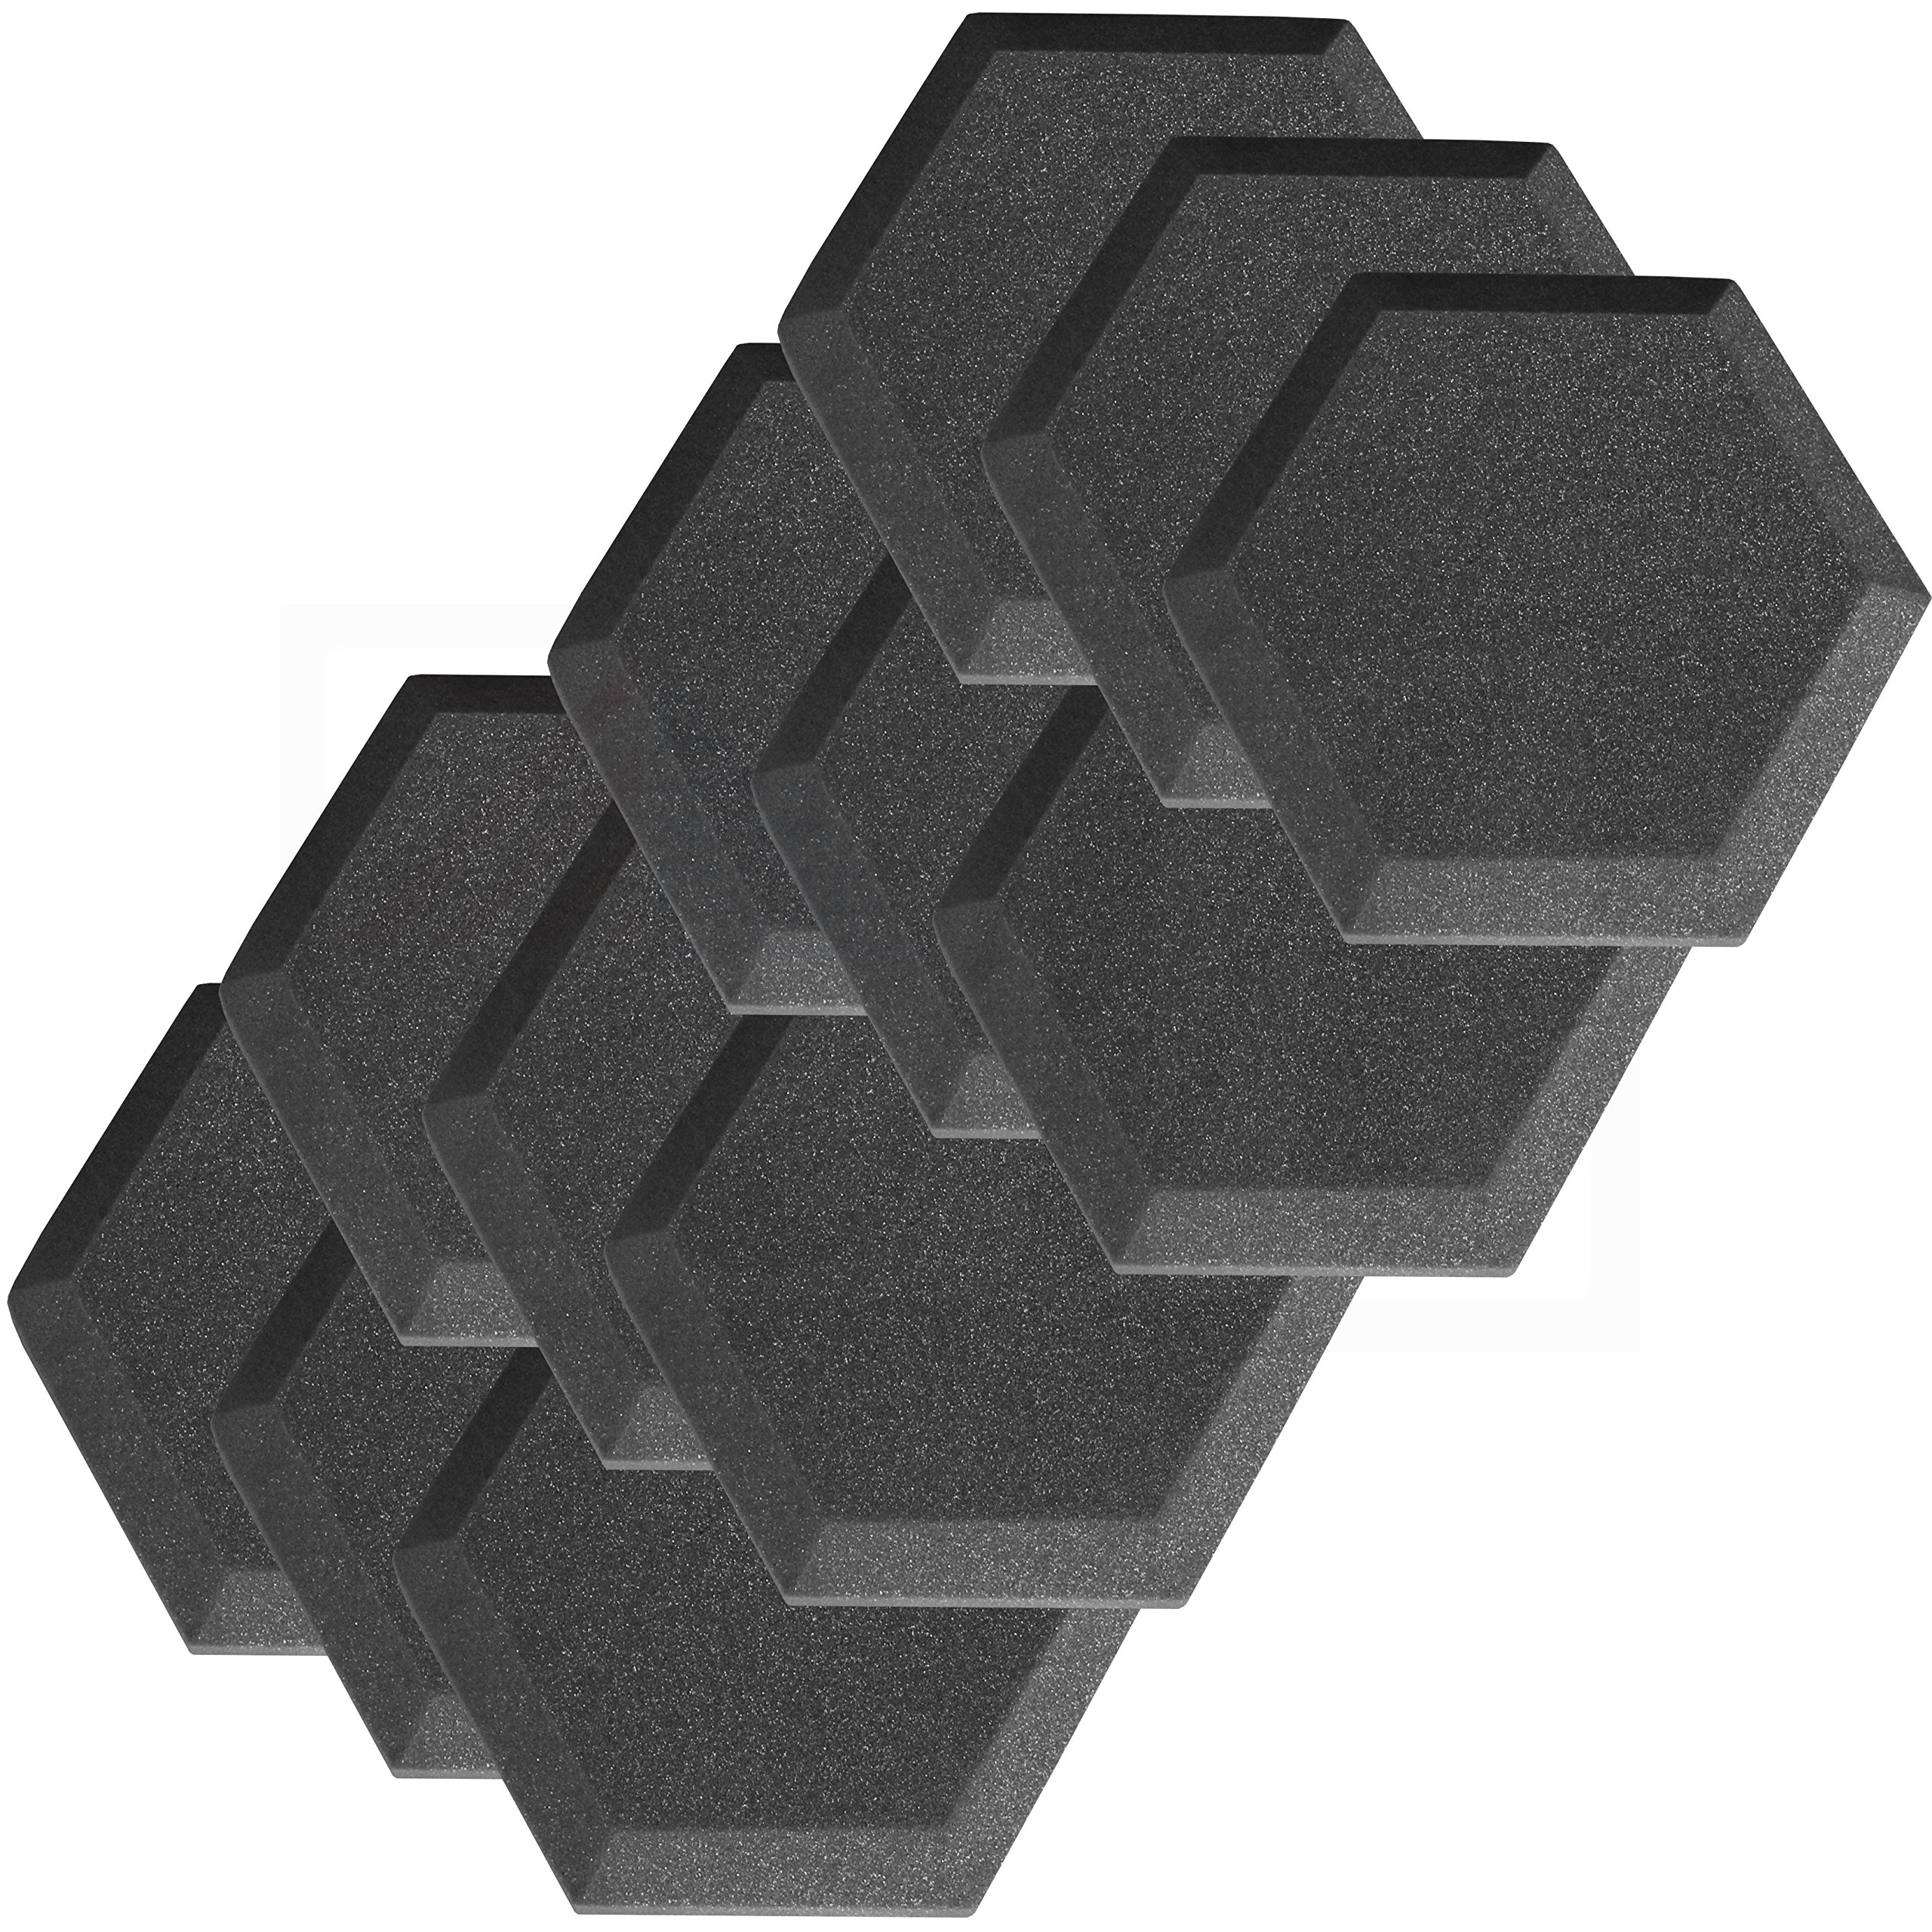 12 Pack Hexagon (Hexagonal) Acoustic Foam Studio Soundproofing Foam Tiles 6'' X 6'' X 1'' Charcoal Art Decor Noise Reduction